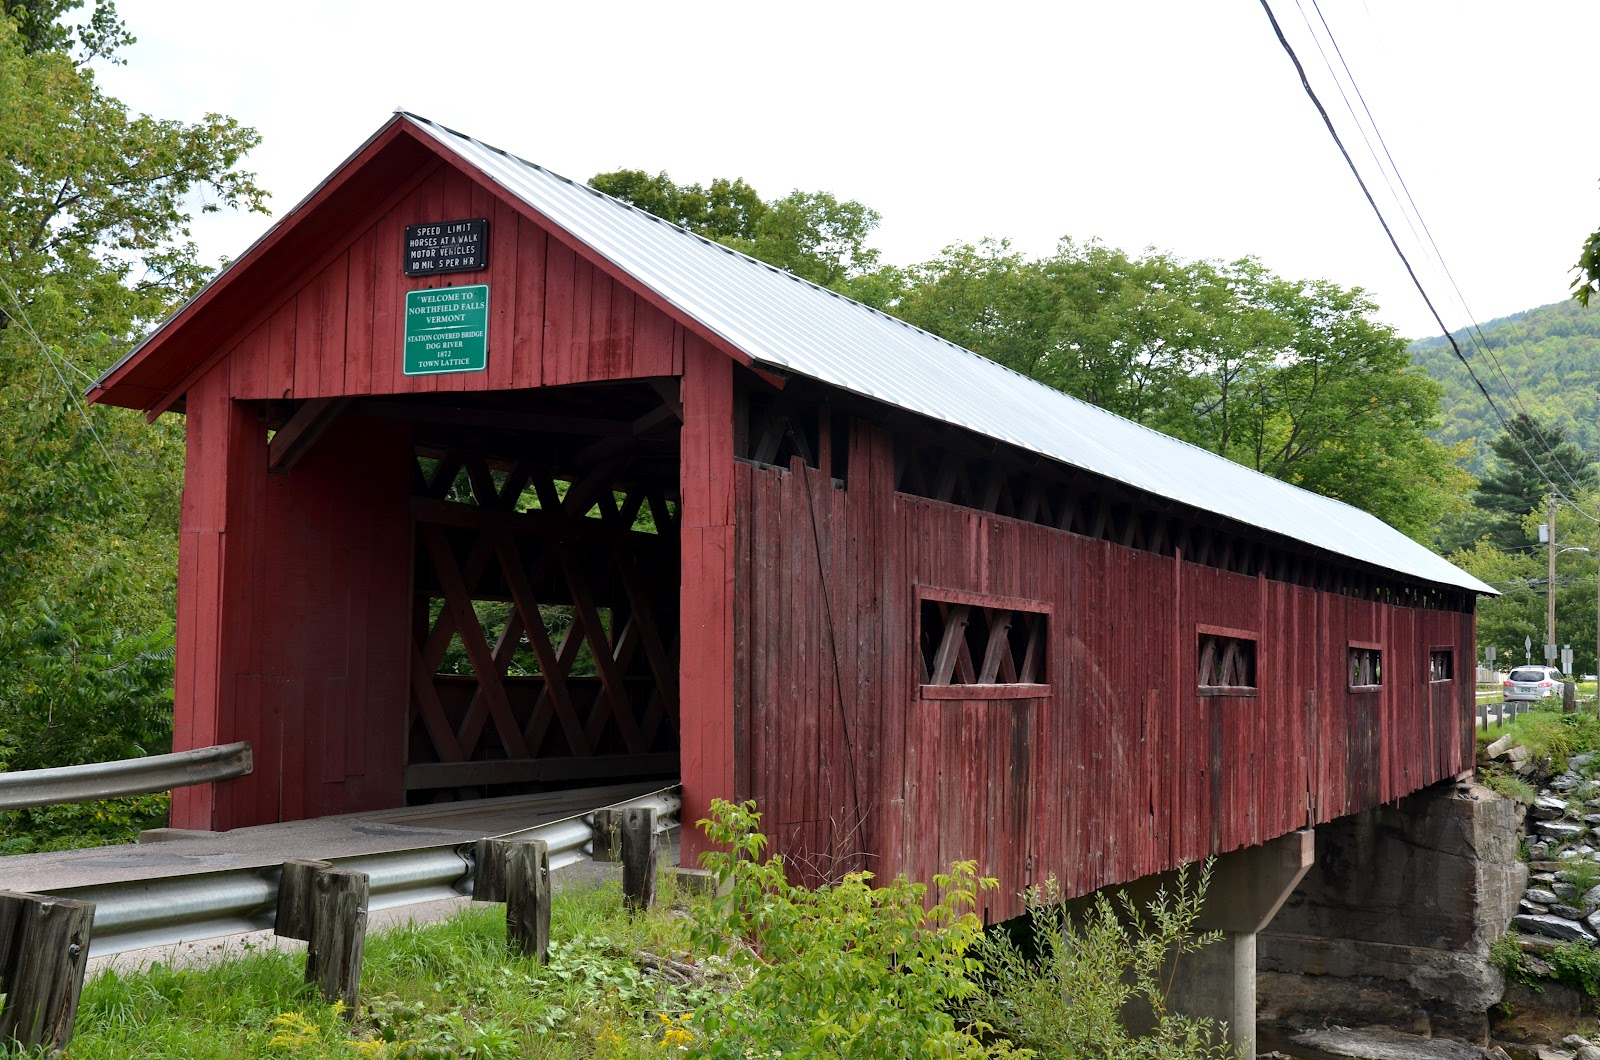 baugh s blog photo essay covered bridges in vermont side view of station bridge in northfield falls reveals some of the town lattice design built in 1872